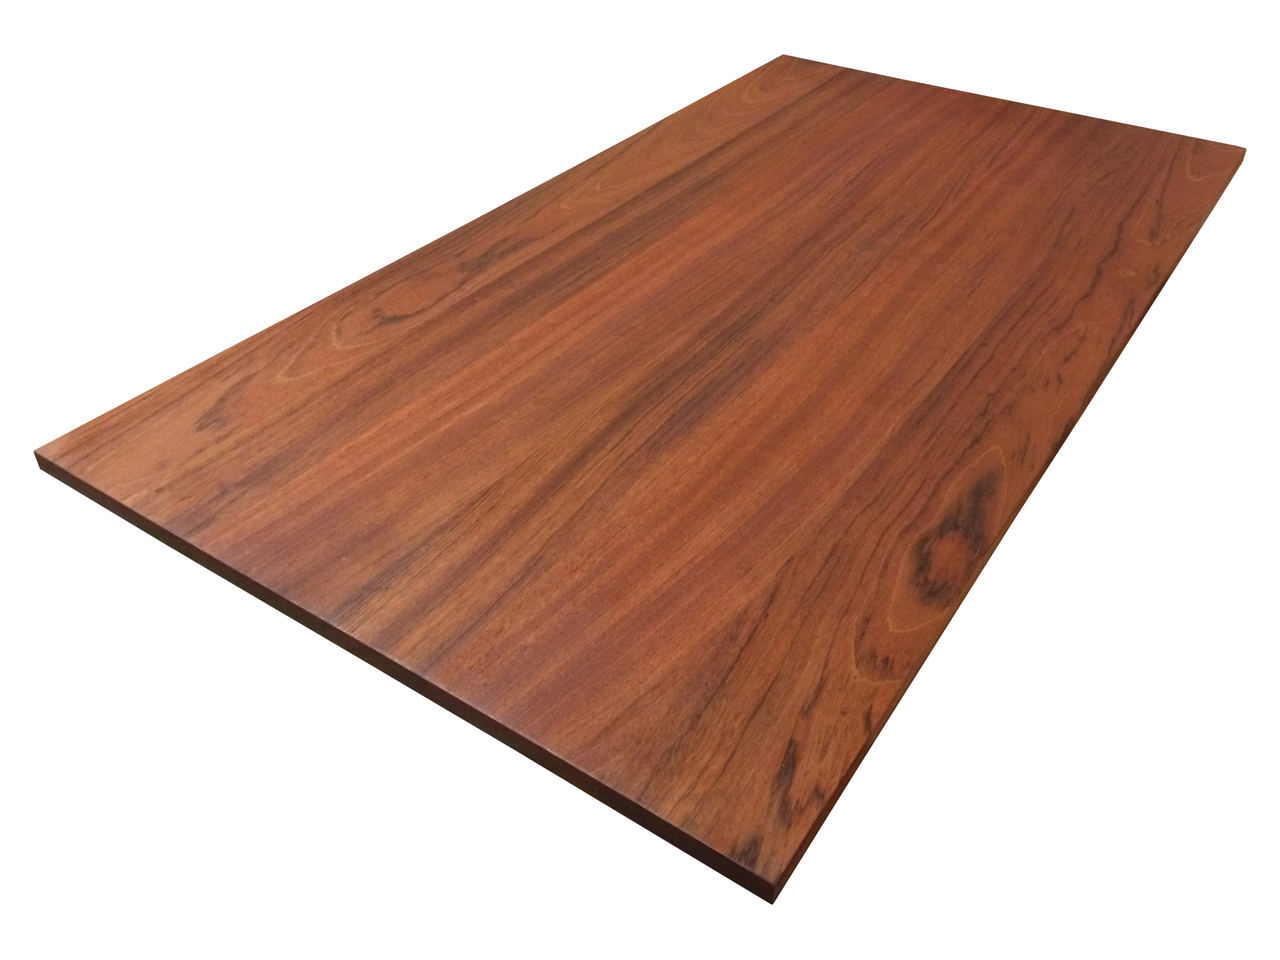 Armani Fine Woodworking Brazilian Cherry Jatoba Tabletop